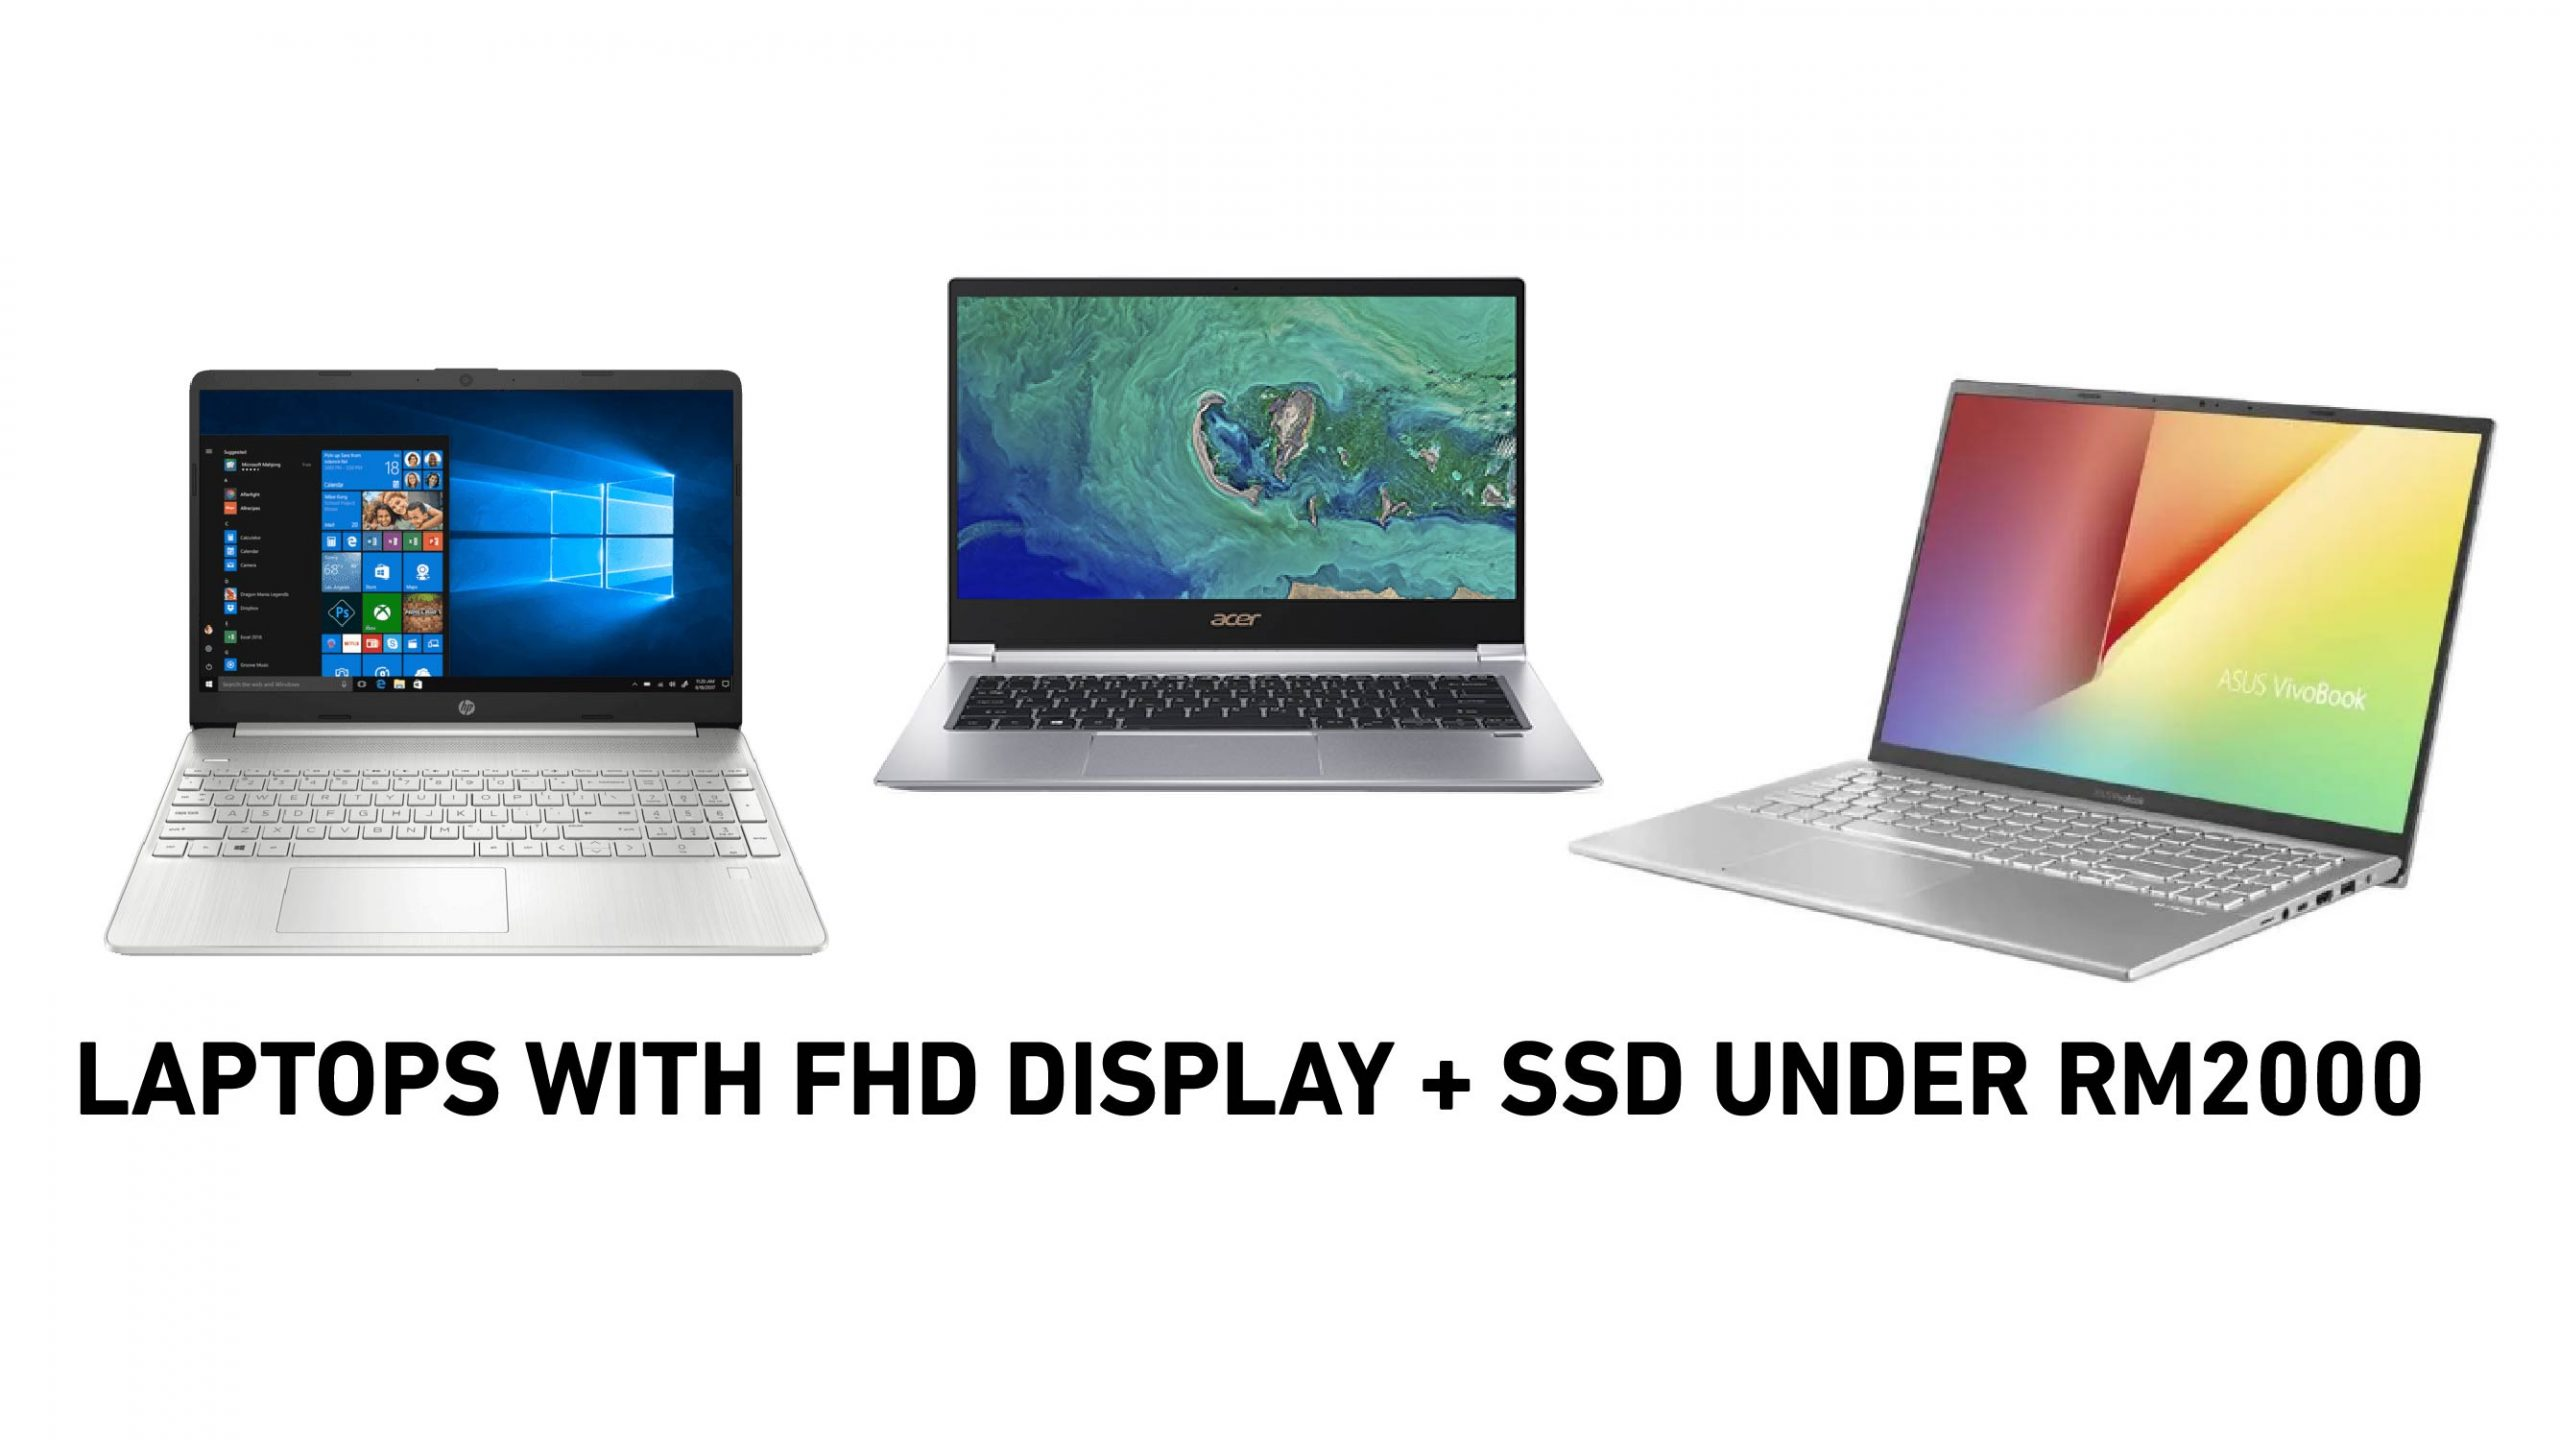 Best Laptops With Full Hd Display And Ssd For Under Rm2000 In 2020 Klgadgetguy